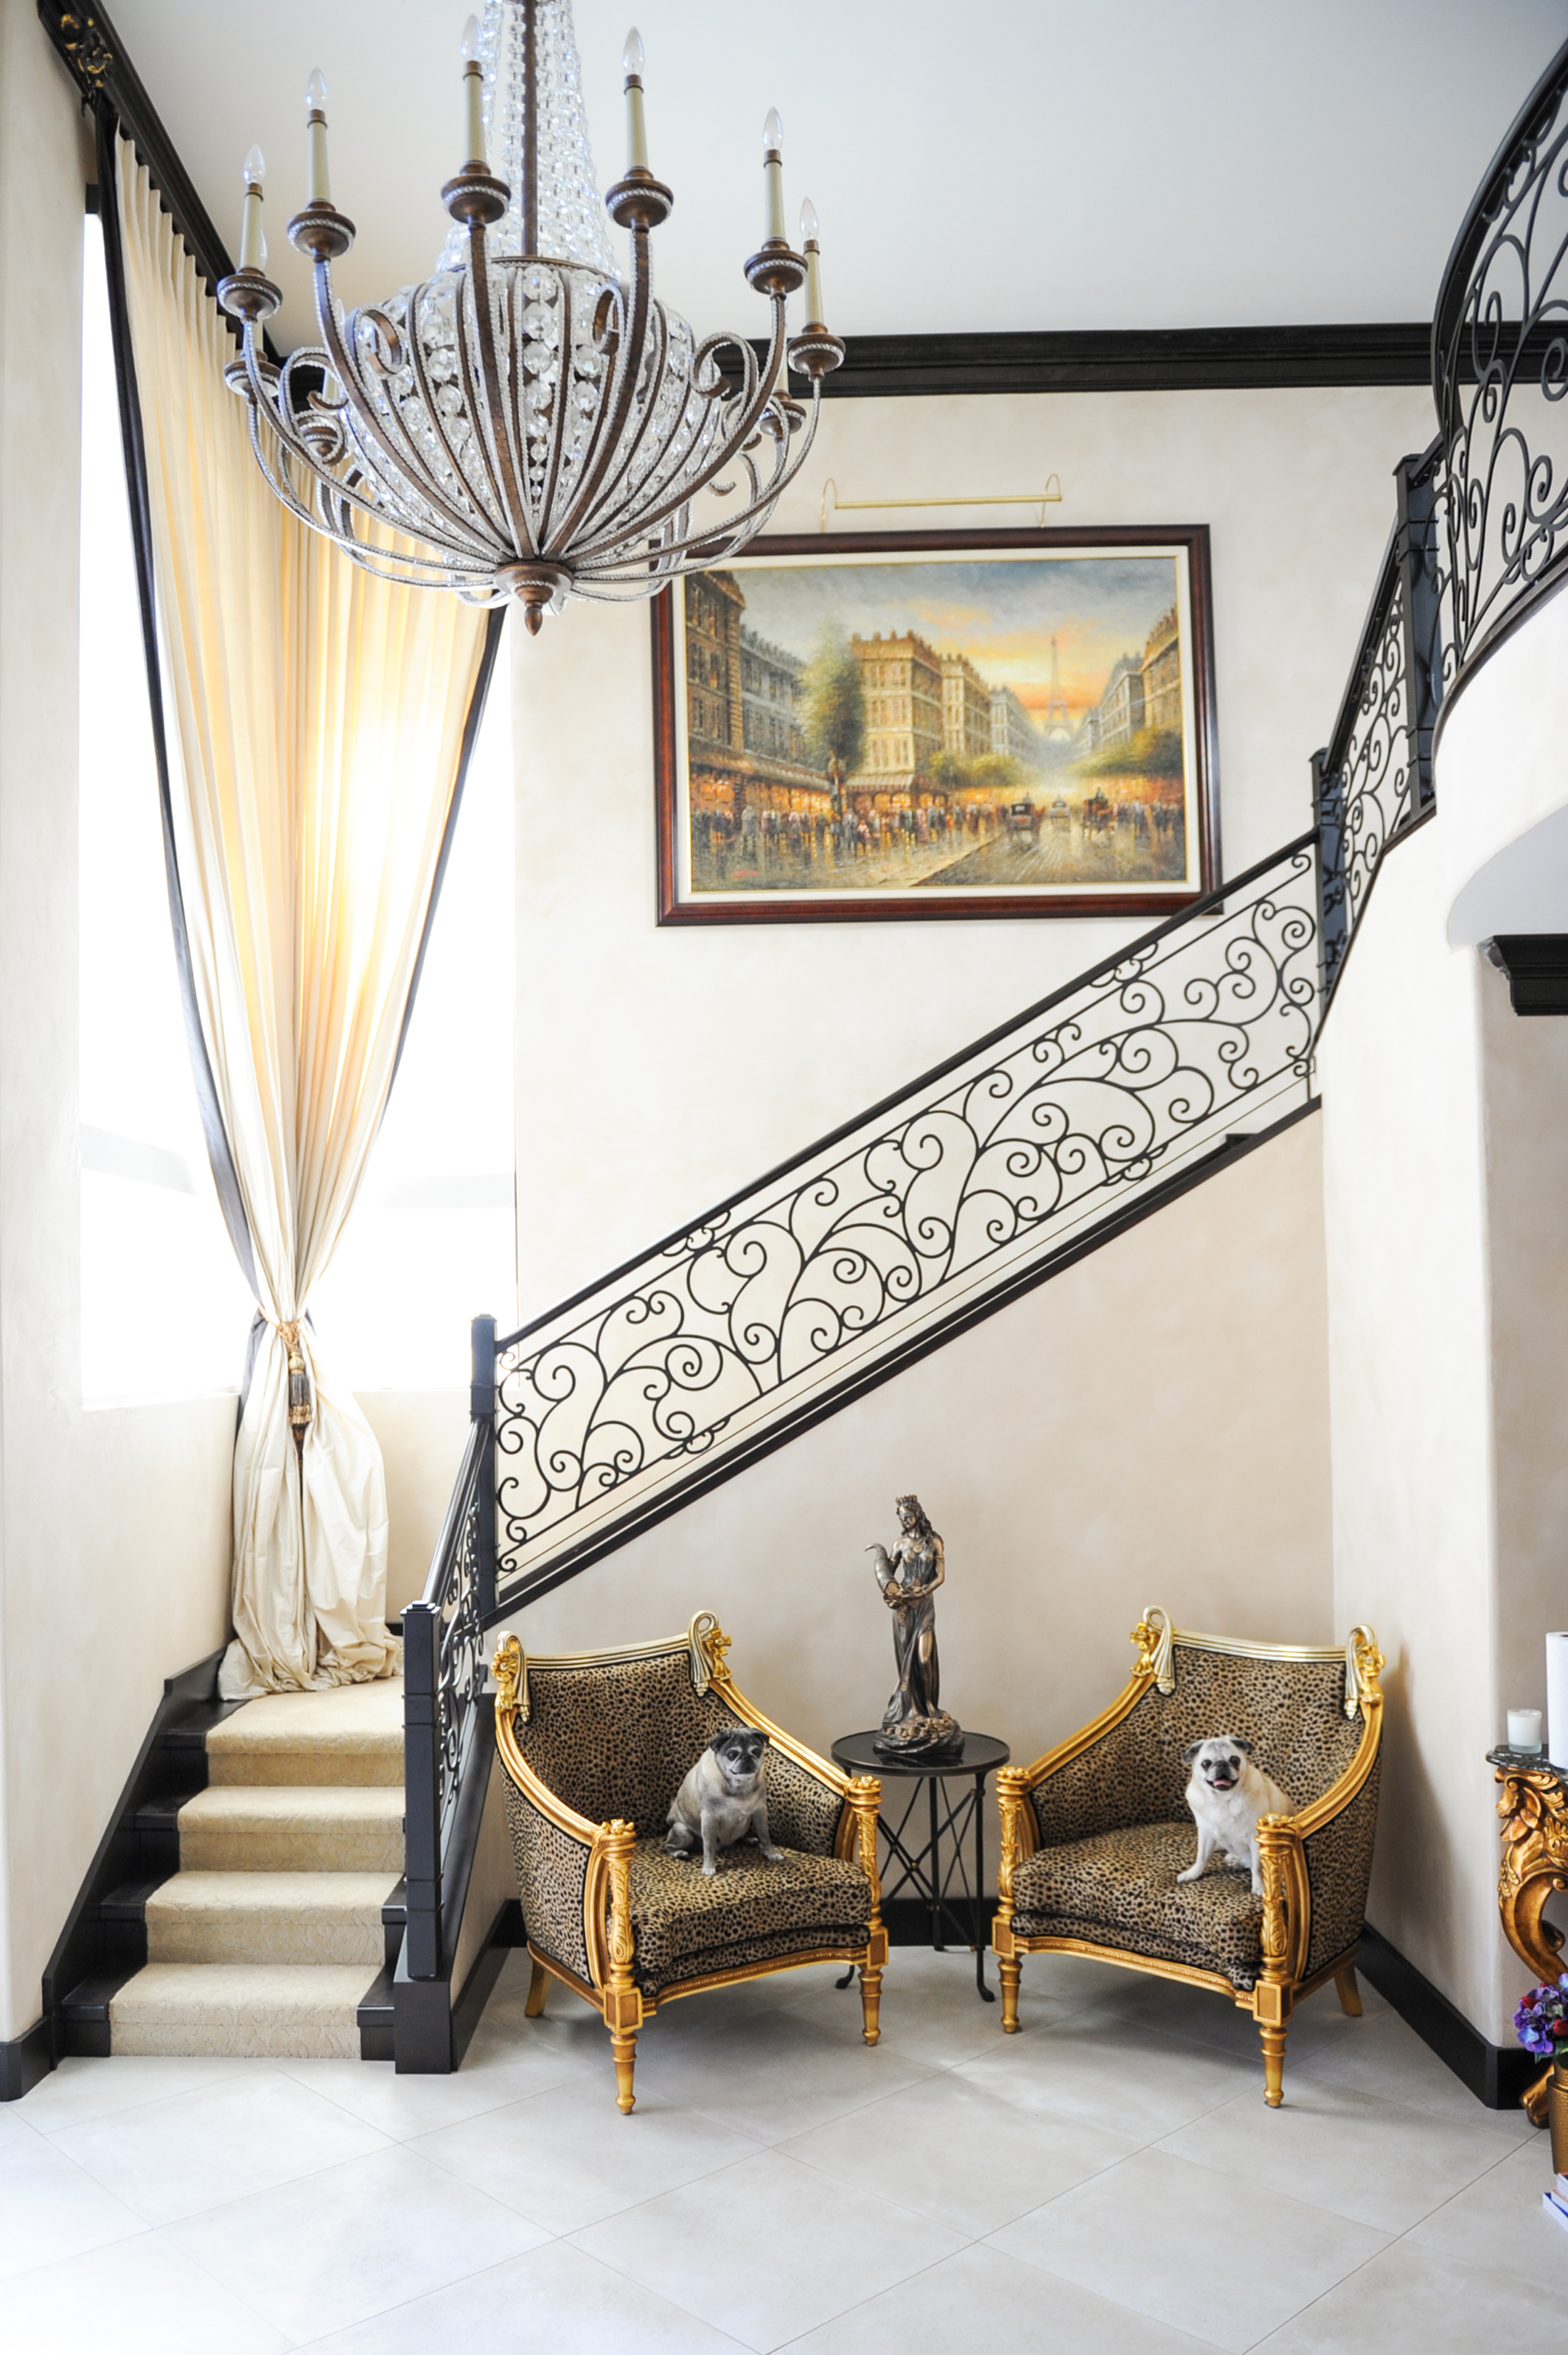 Custom Wrought Iron Stairs, Reupholstered Antique Chairs, Leopard Print,  Pugs, 24u201d